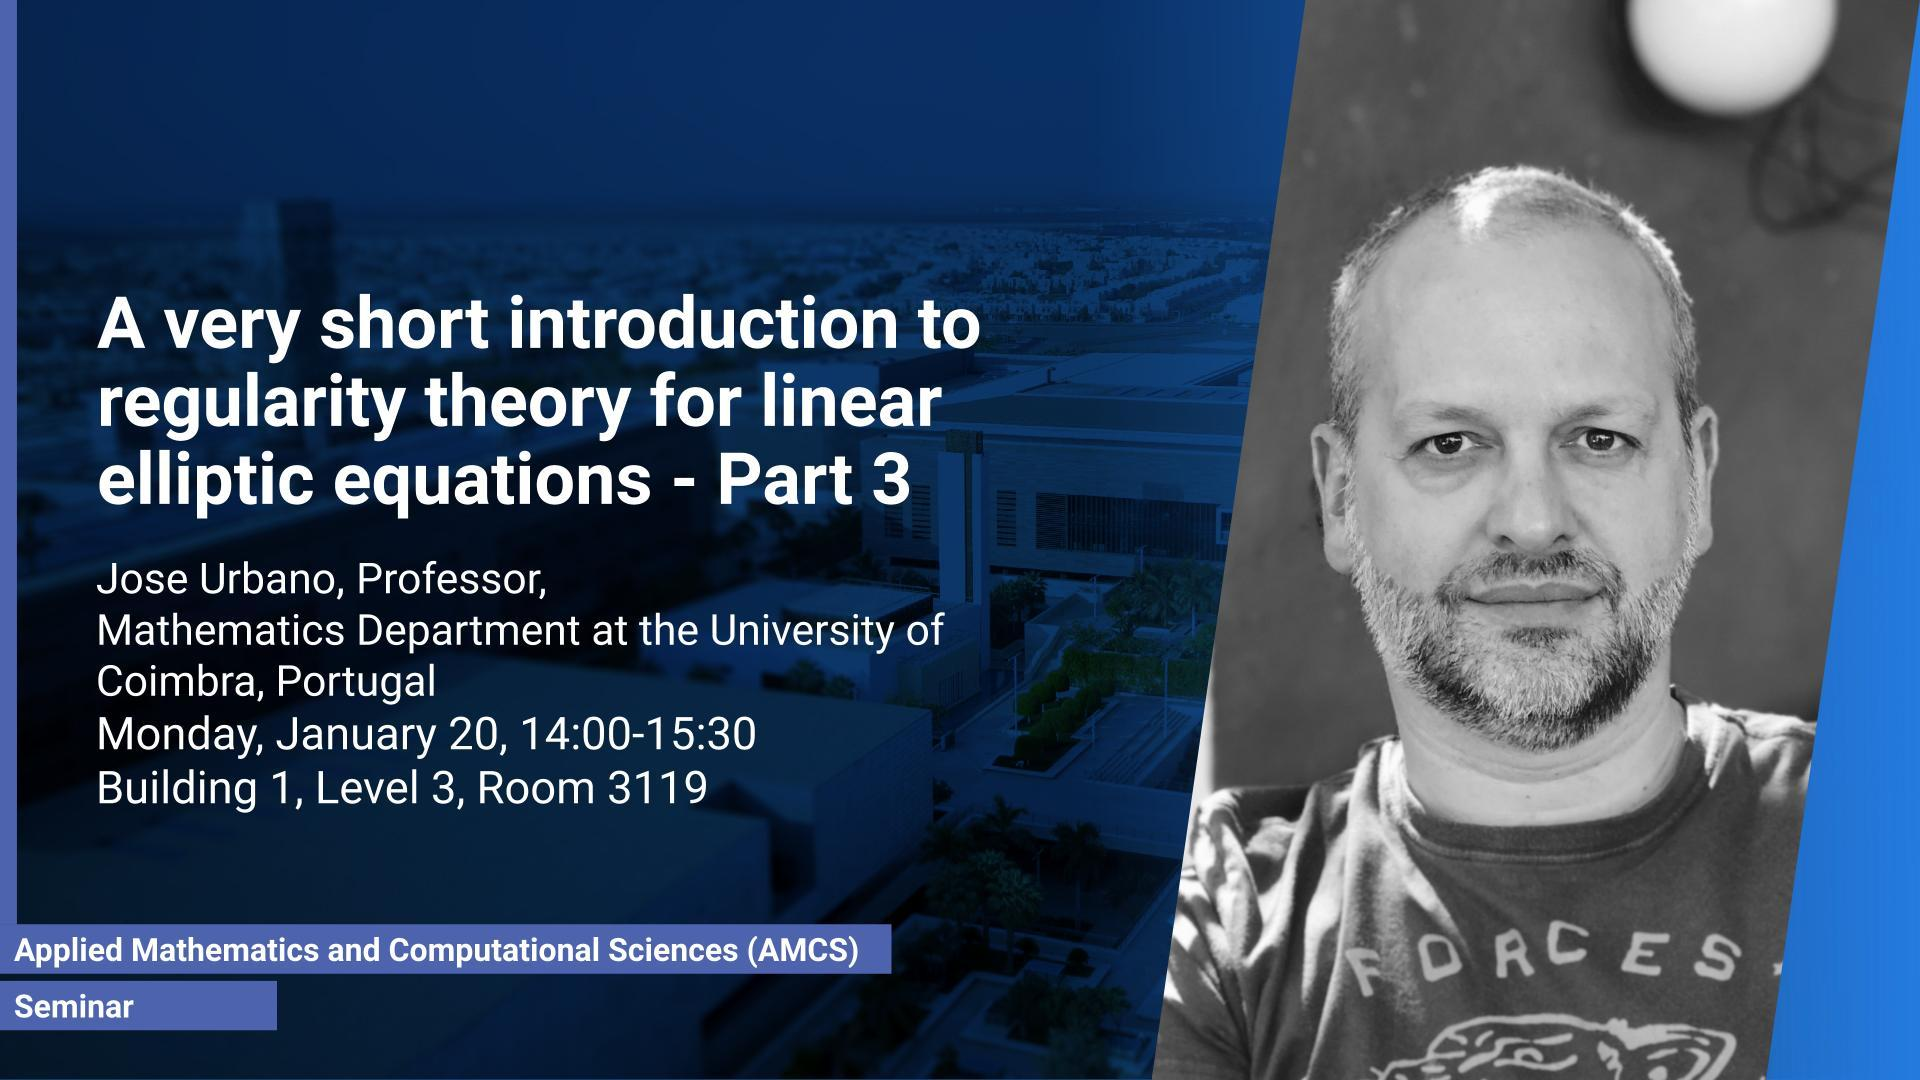 KAUST CEMSE AMCS Seminar Prof. Jose Urbano Part 3 regularity theory for linear elliptic equations